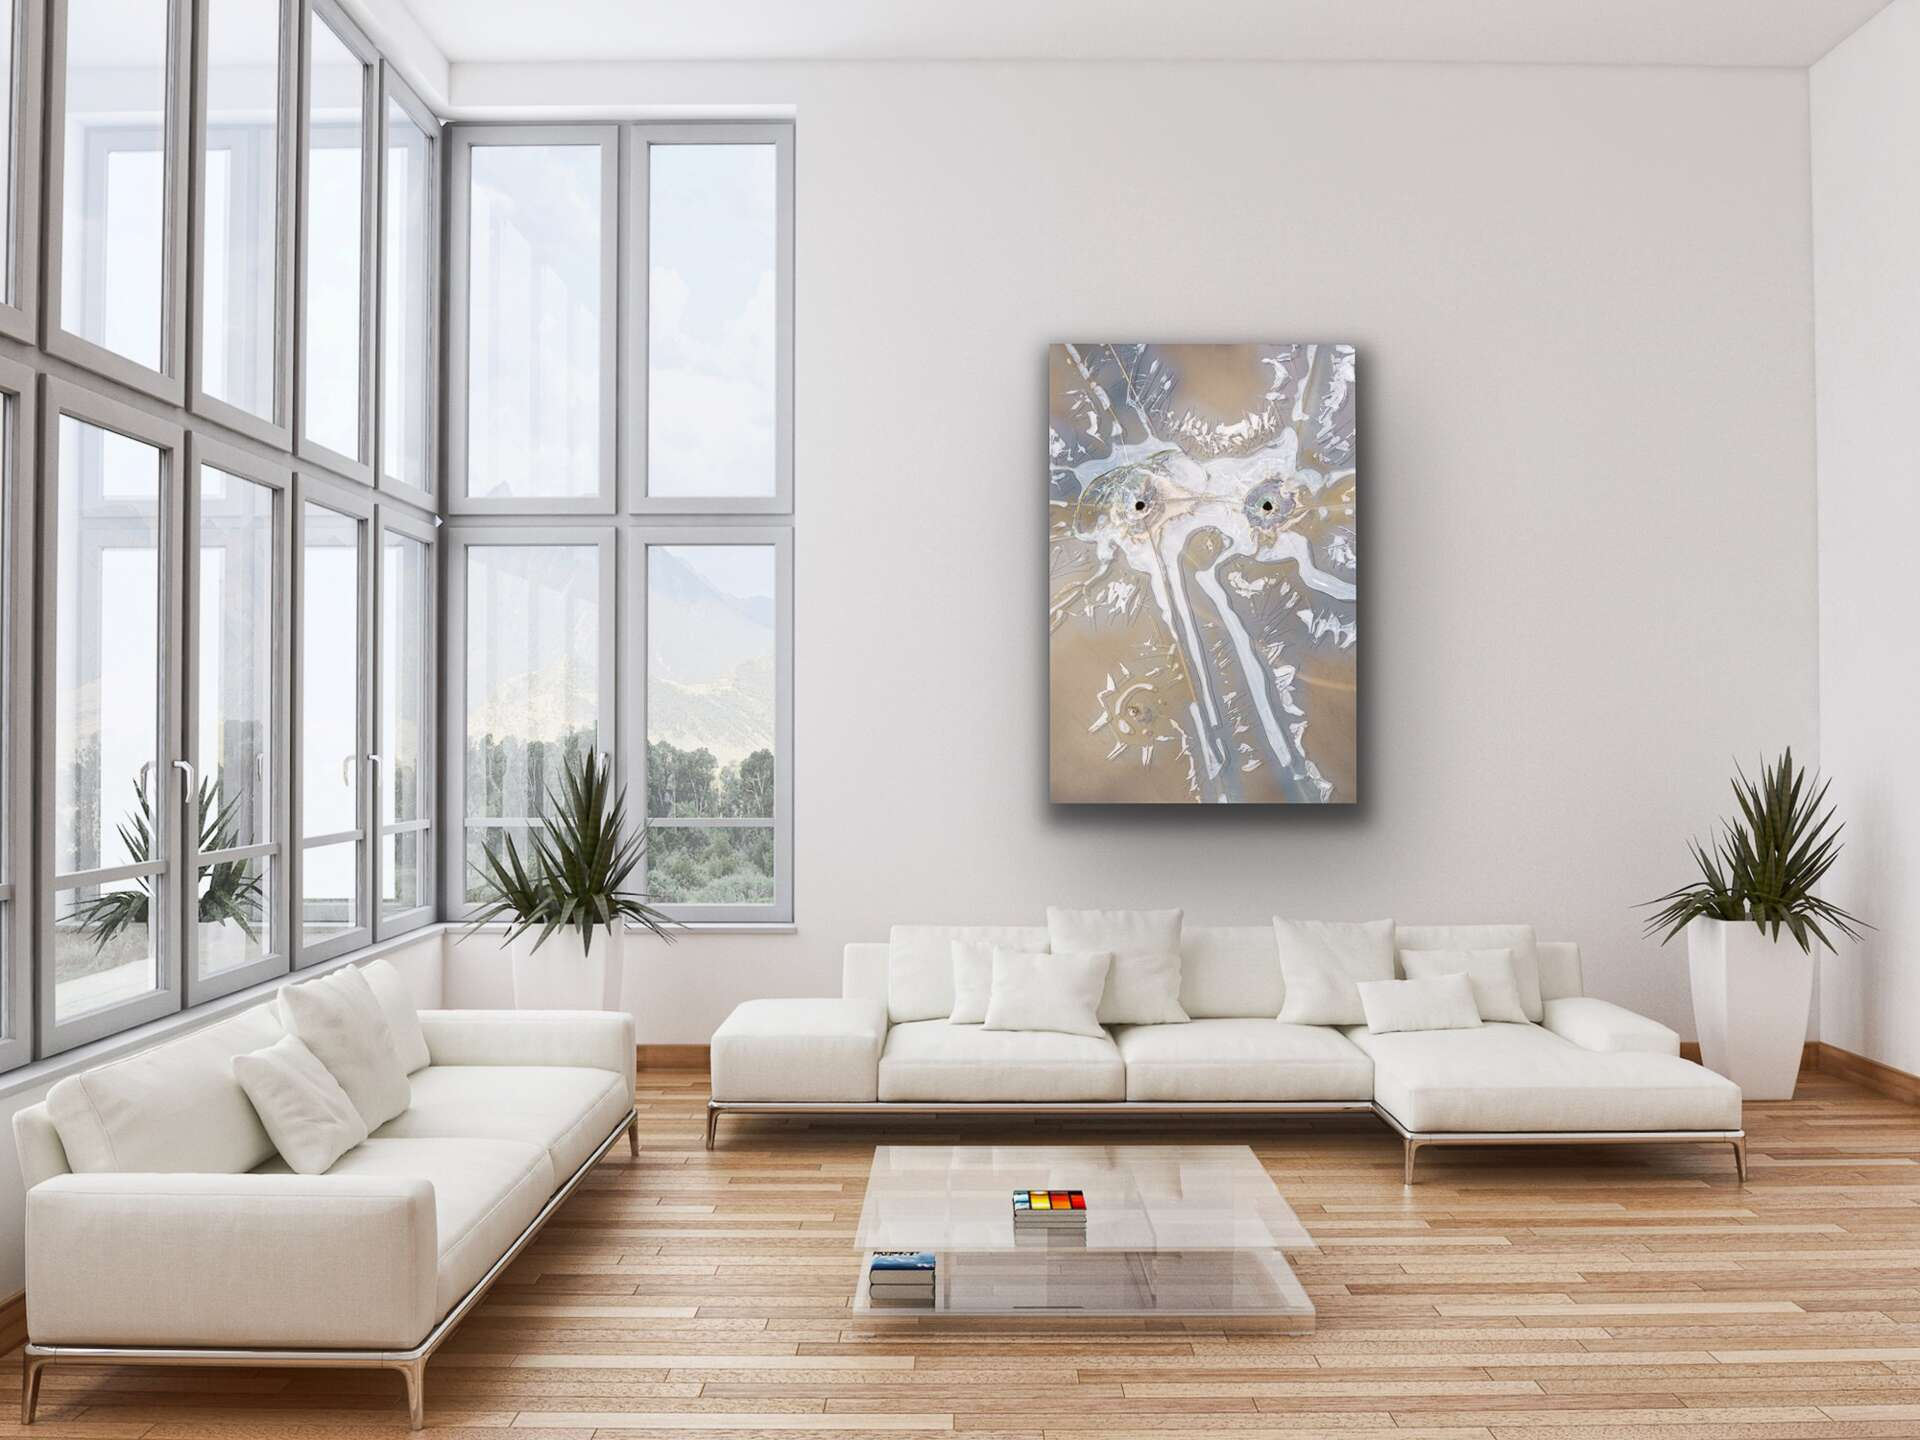 elephant in the room metaphorical abstract art in contemporary loft living room space